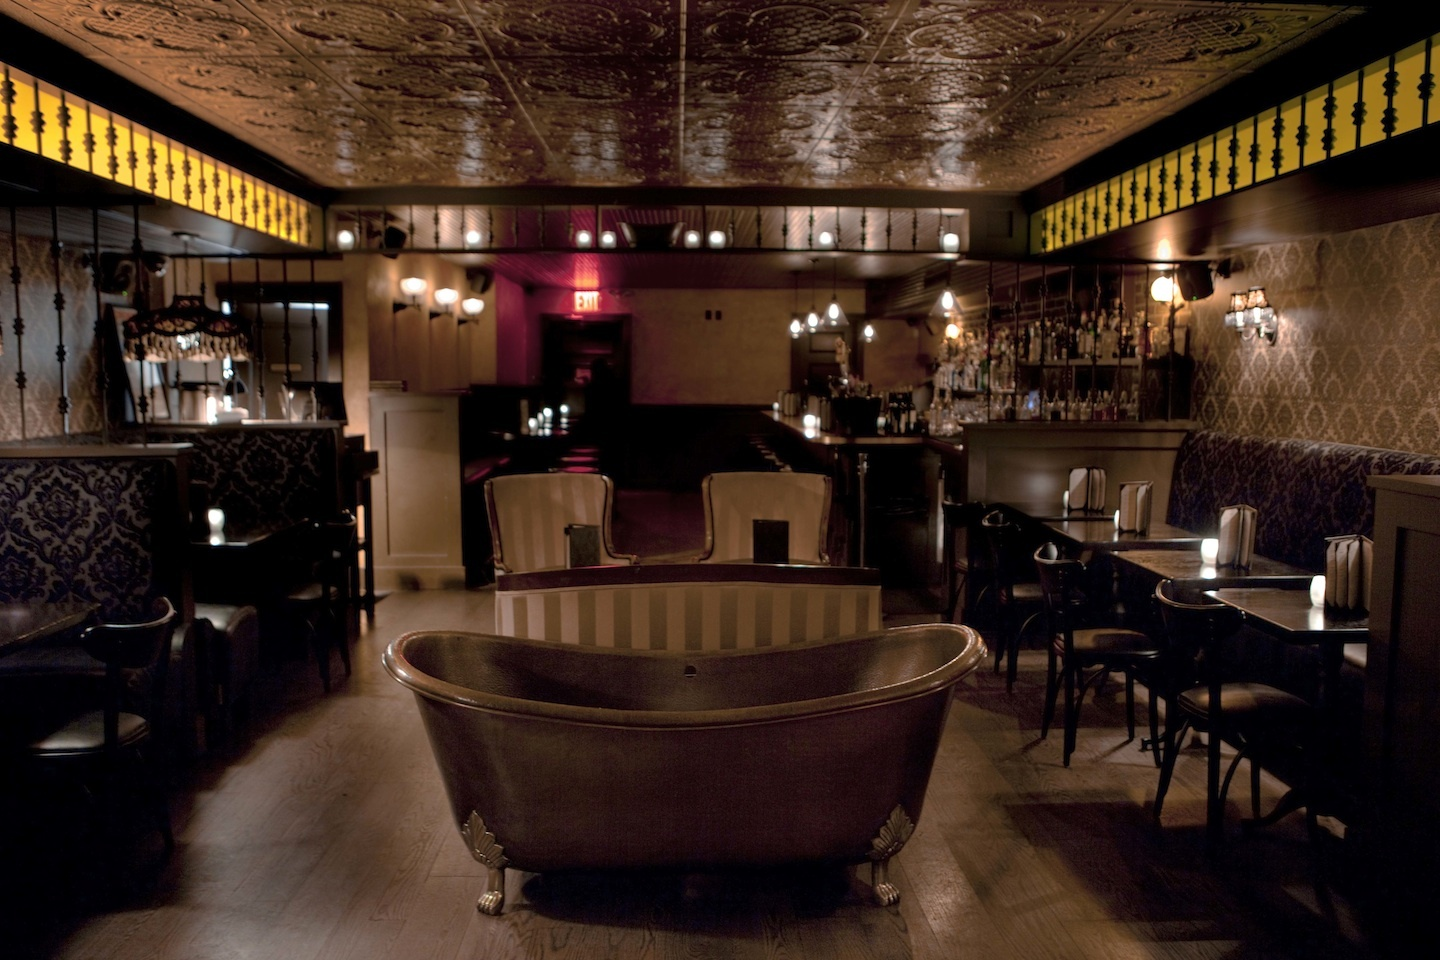 Bathtub gin a hidden speakeasy in the heart of new york for Bathrooms in nyc